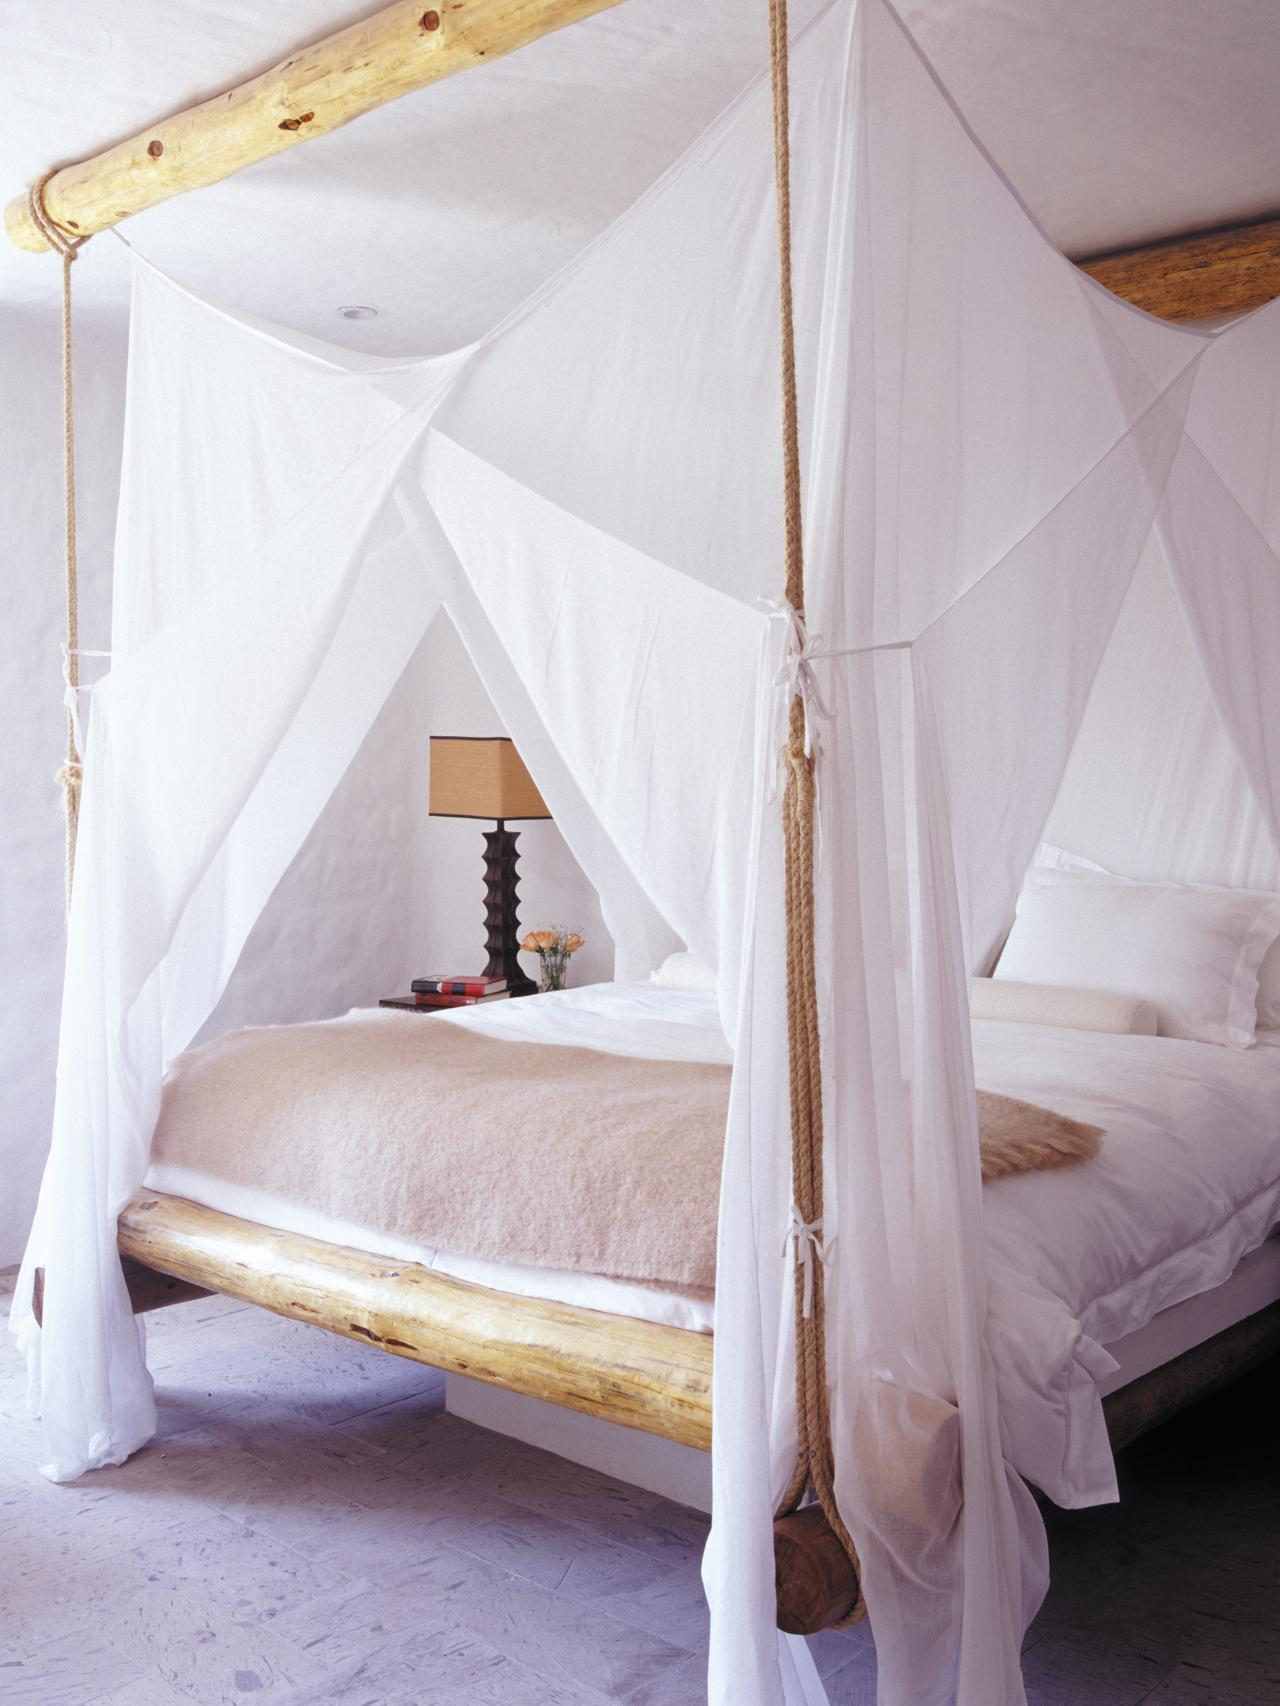 Beautiful Bohemian Bedroom Inspiration Four Poster Beds With Boho Chic  Vibes With Poster Bed Canopy.